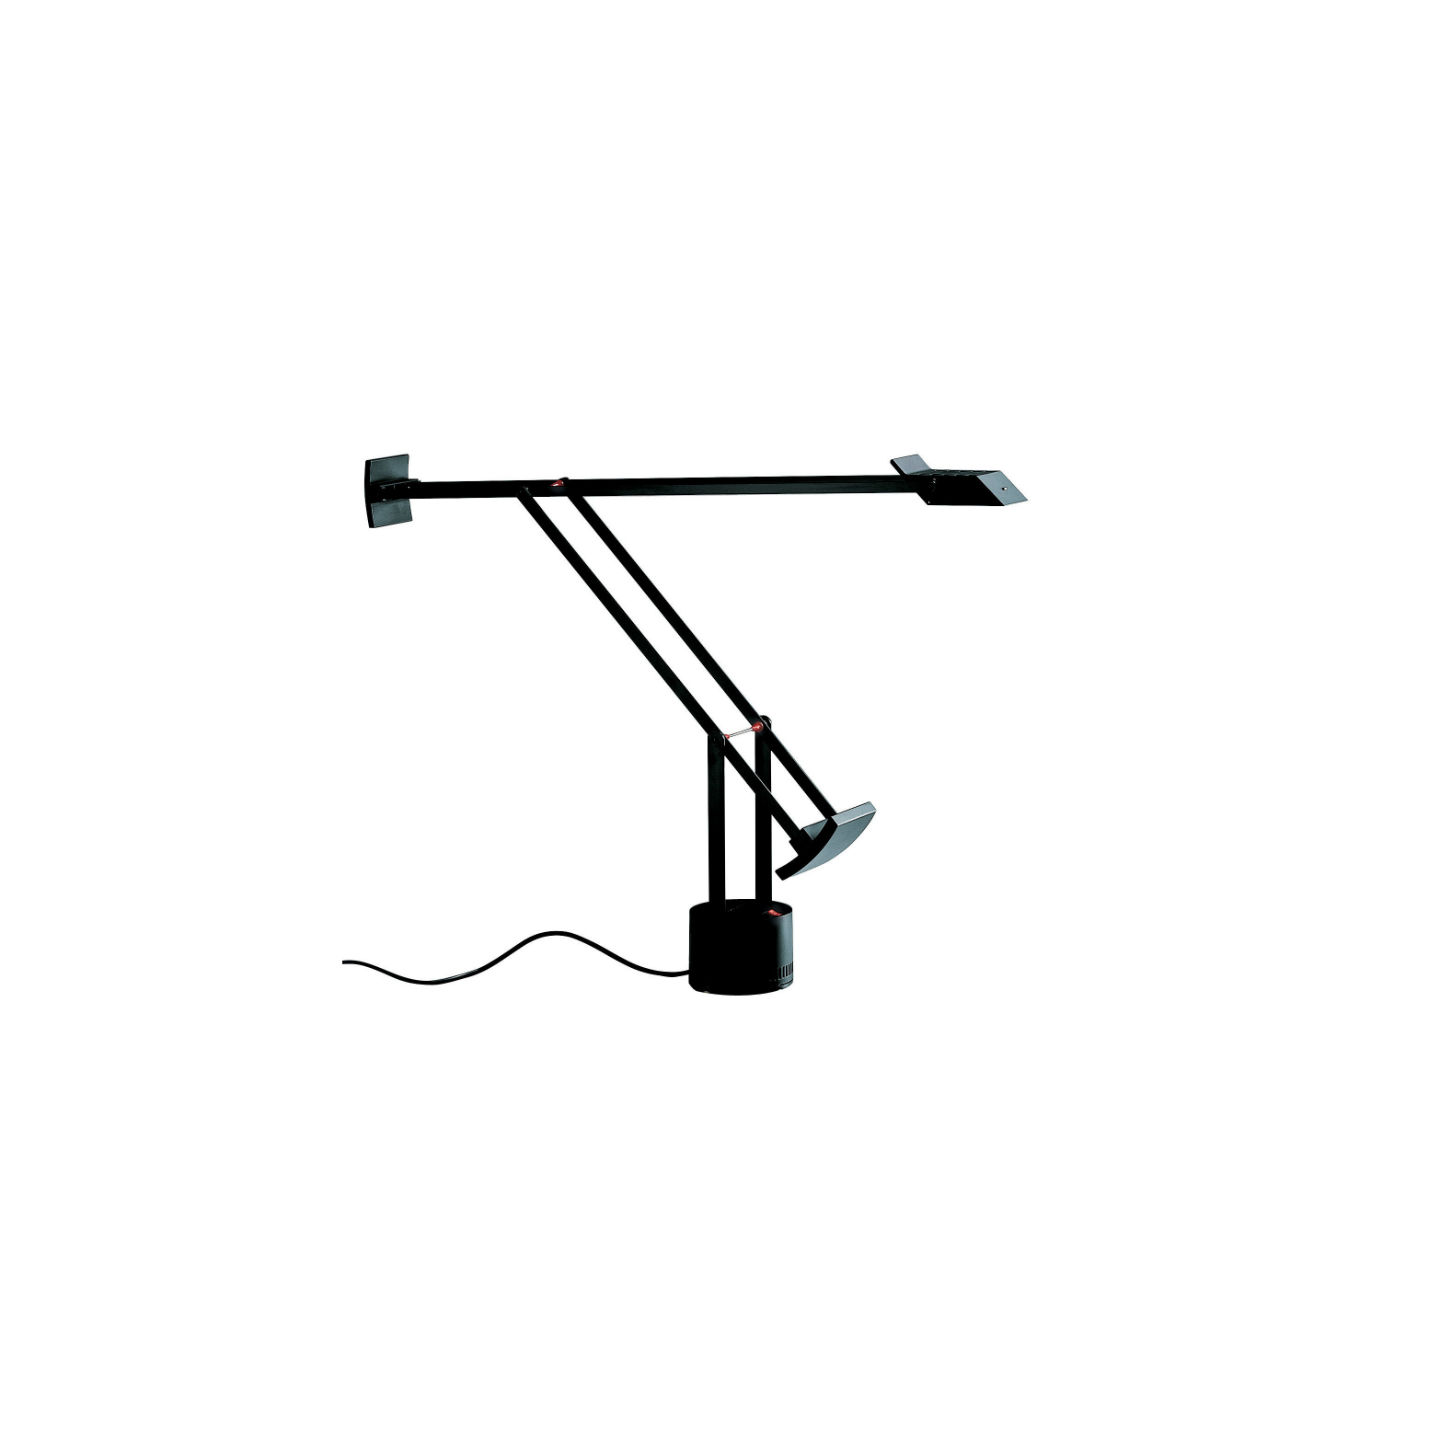 Tizio Lampe de table Gy6.35 1x50w Noir